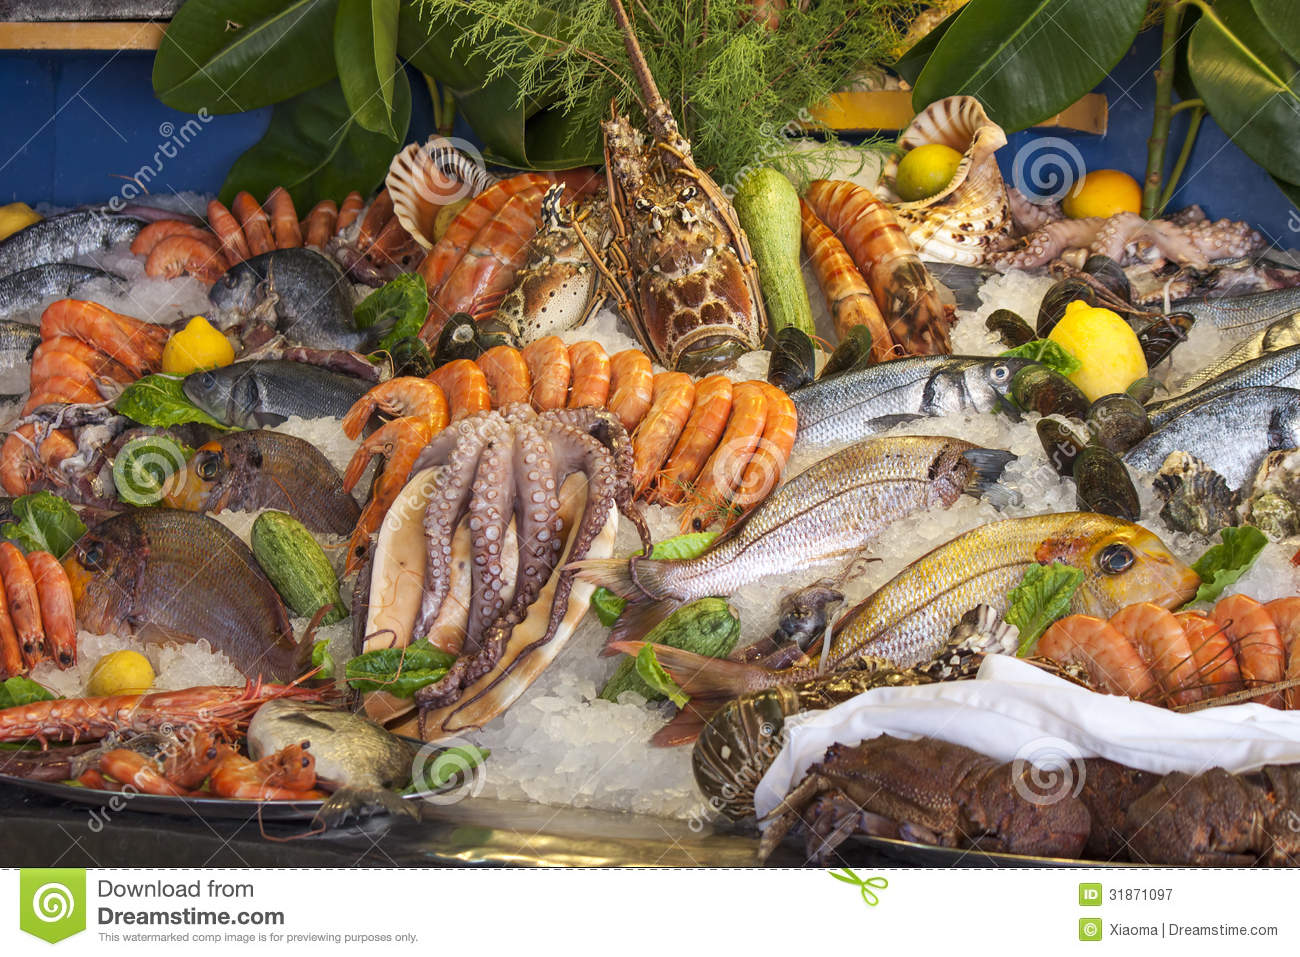 Seafood crustaceans and fish stock image image 31871097 for Is fish seafood